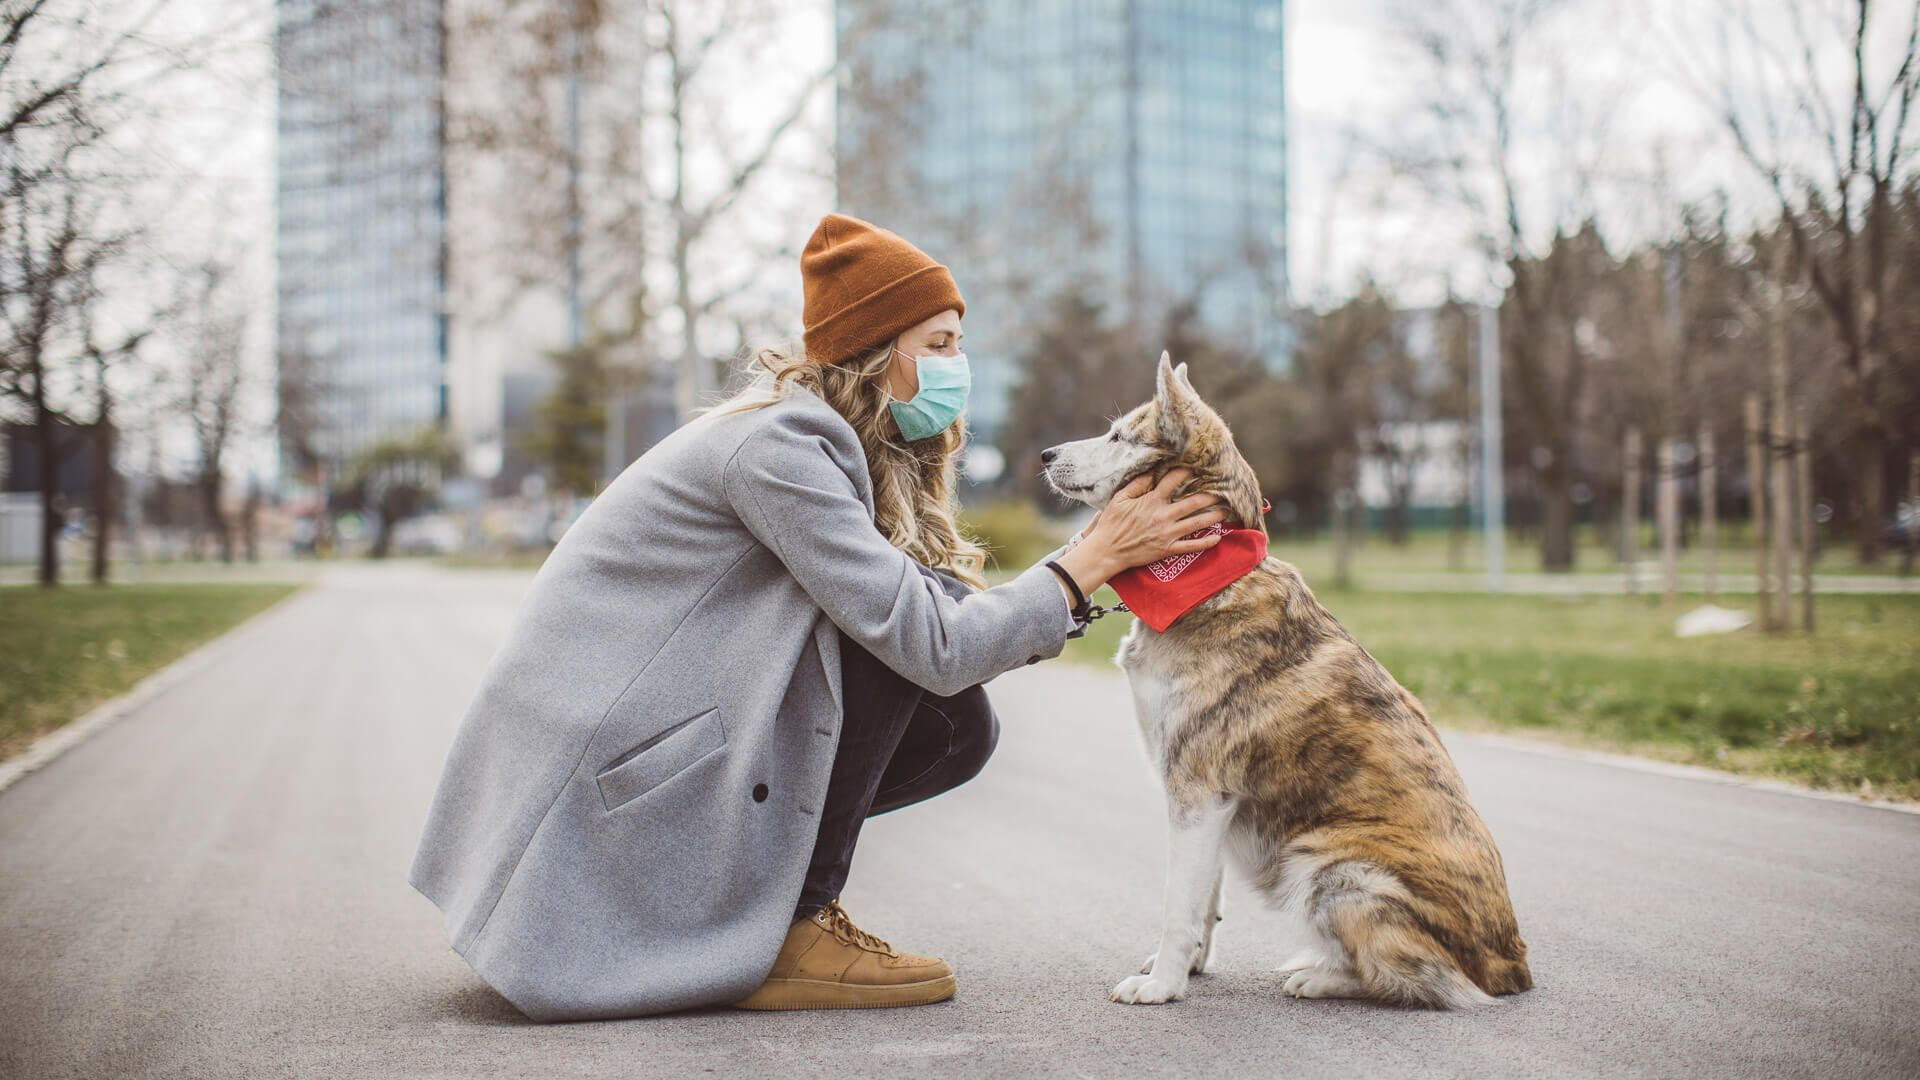 Woman during pandemic isolation walking with her dog in park.